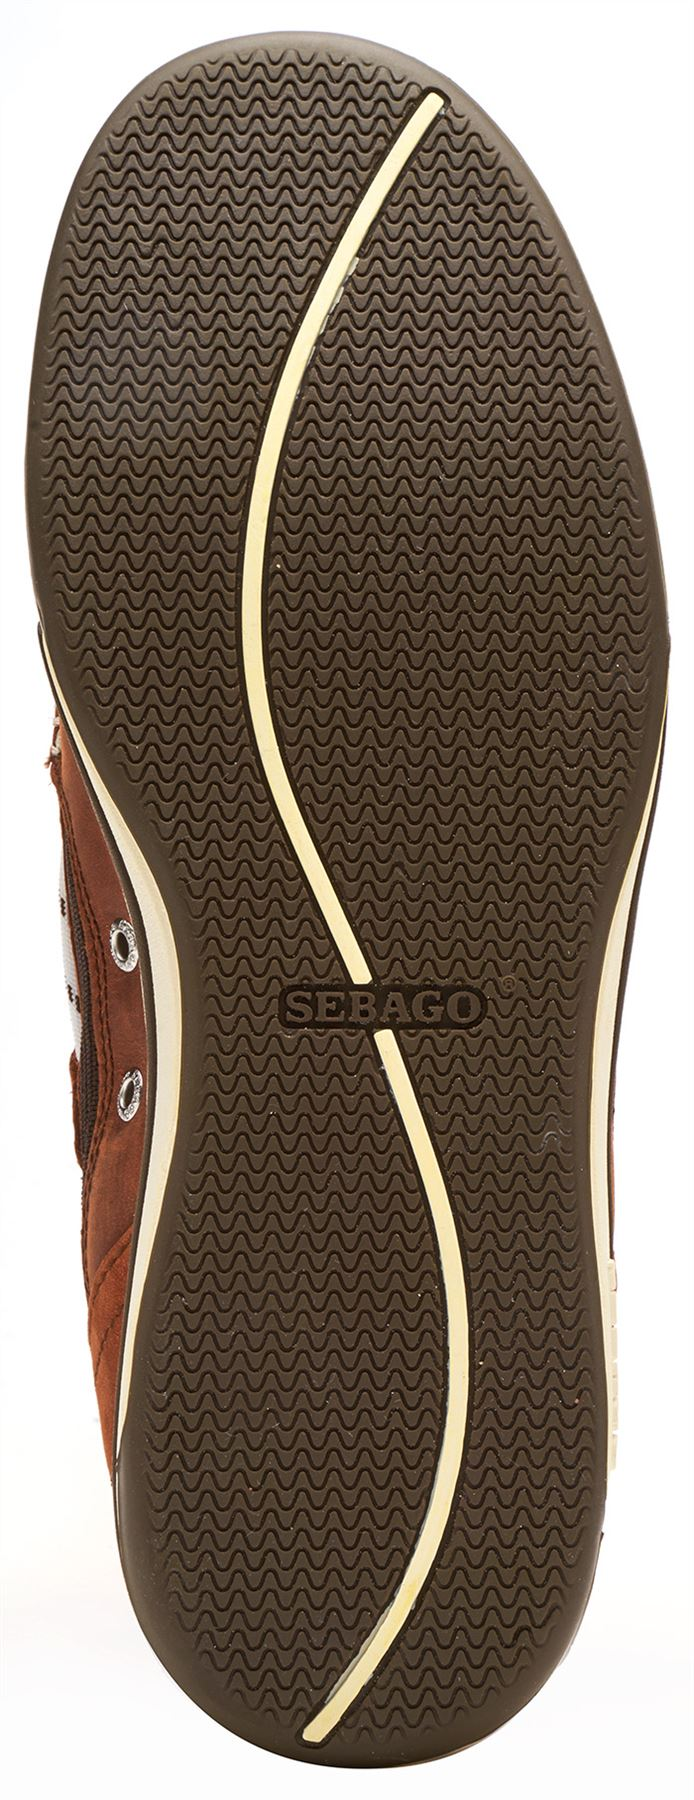 Sebago-Triton-Three-Eye-FGL-Suede-Boat-Deck-Shoes-in-Navy-Blue-amp-Brown-Cognac thumbnail 9